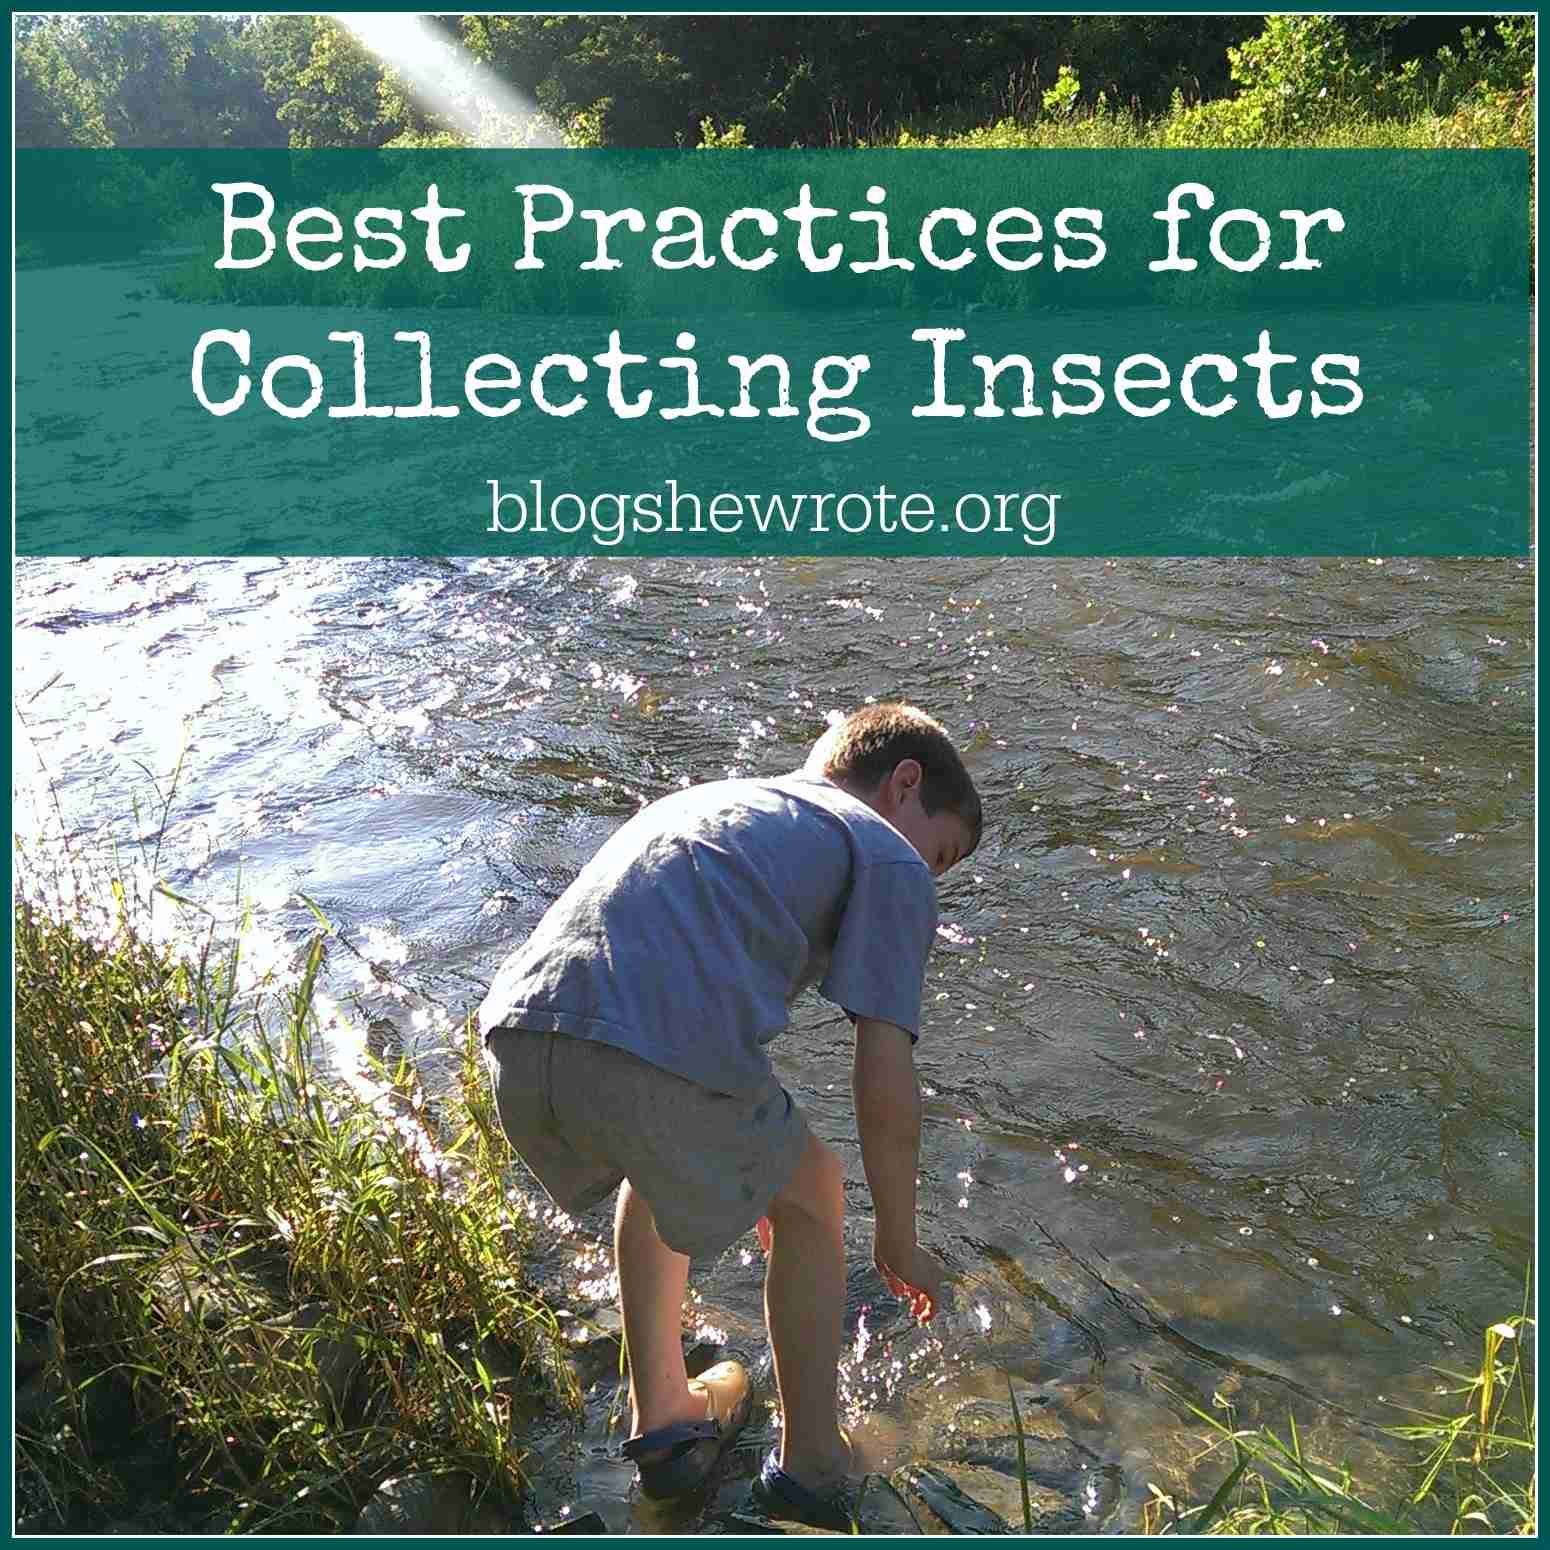 Blog, She Wrote: Best Practices for Collecting Insects